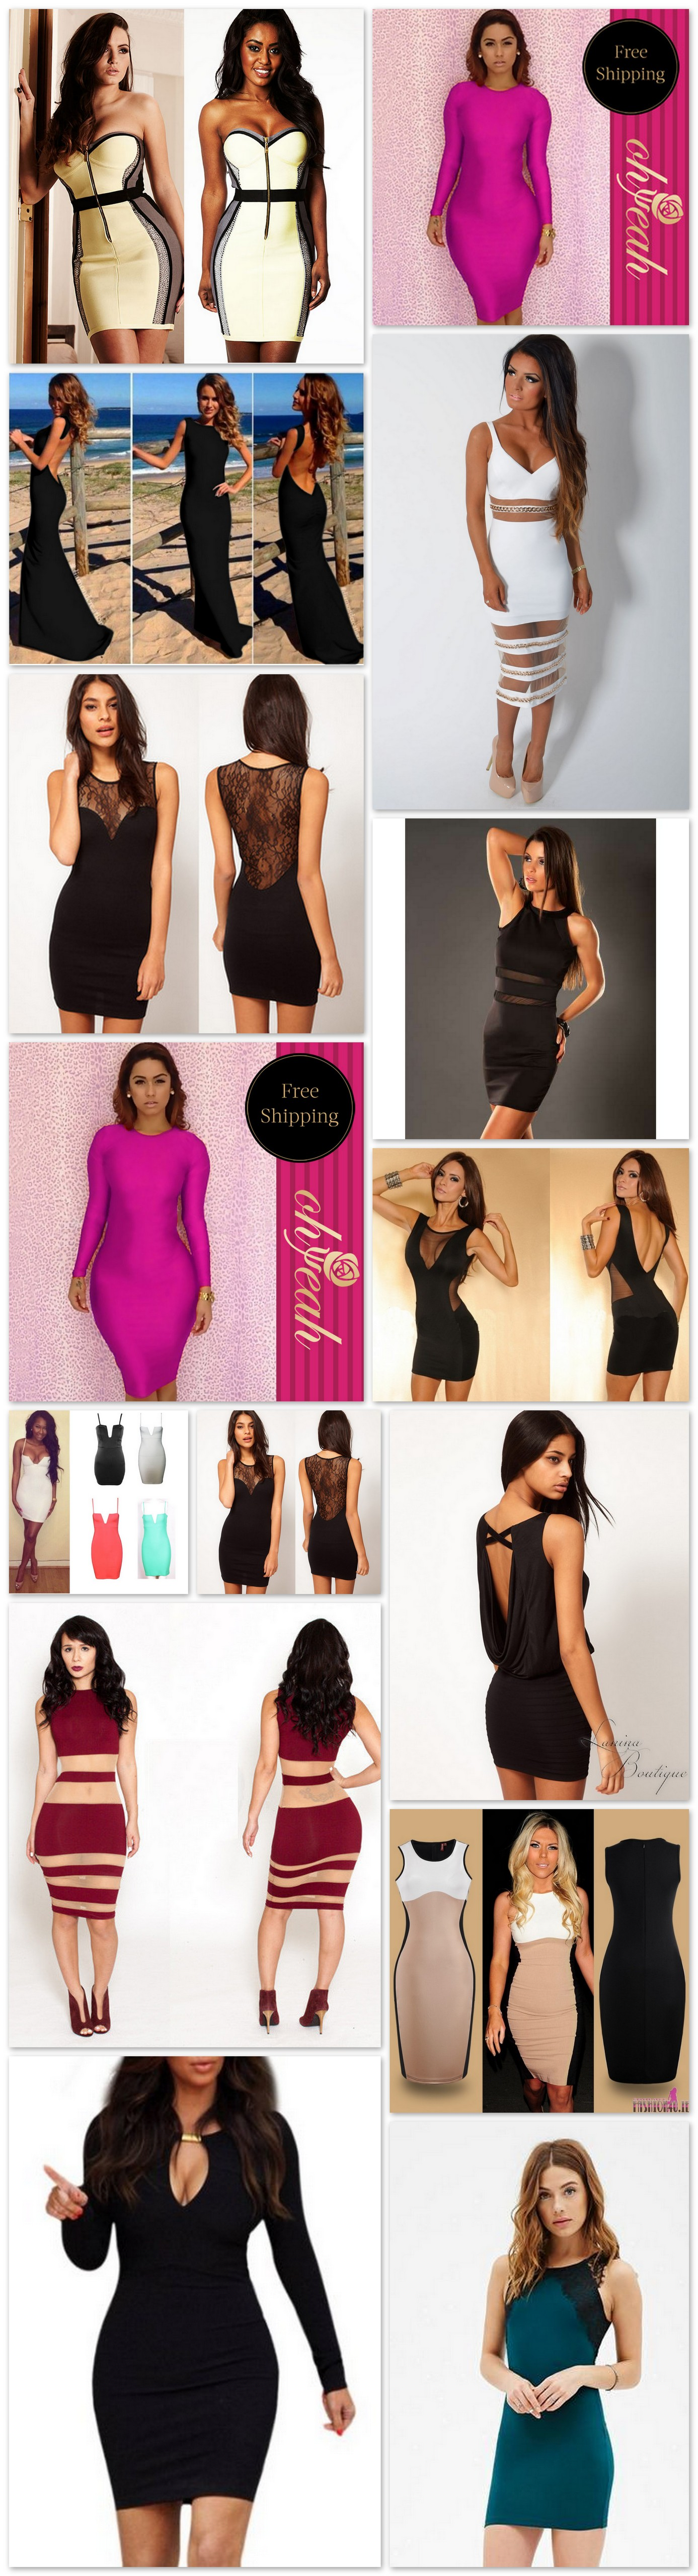 Bodycon Party Dresses 2015   2016